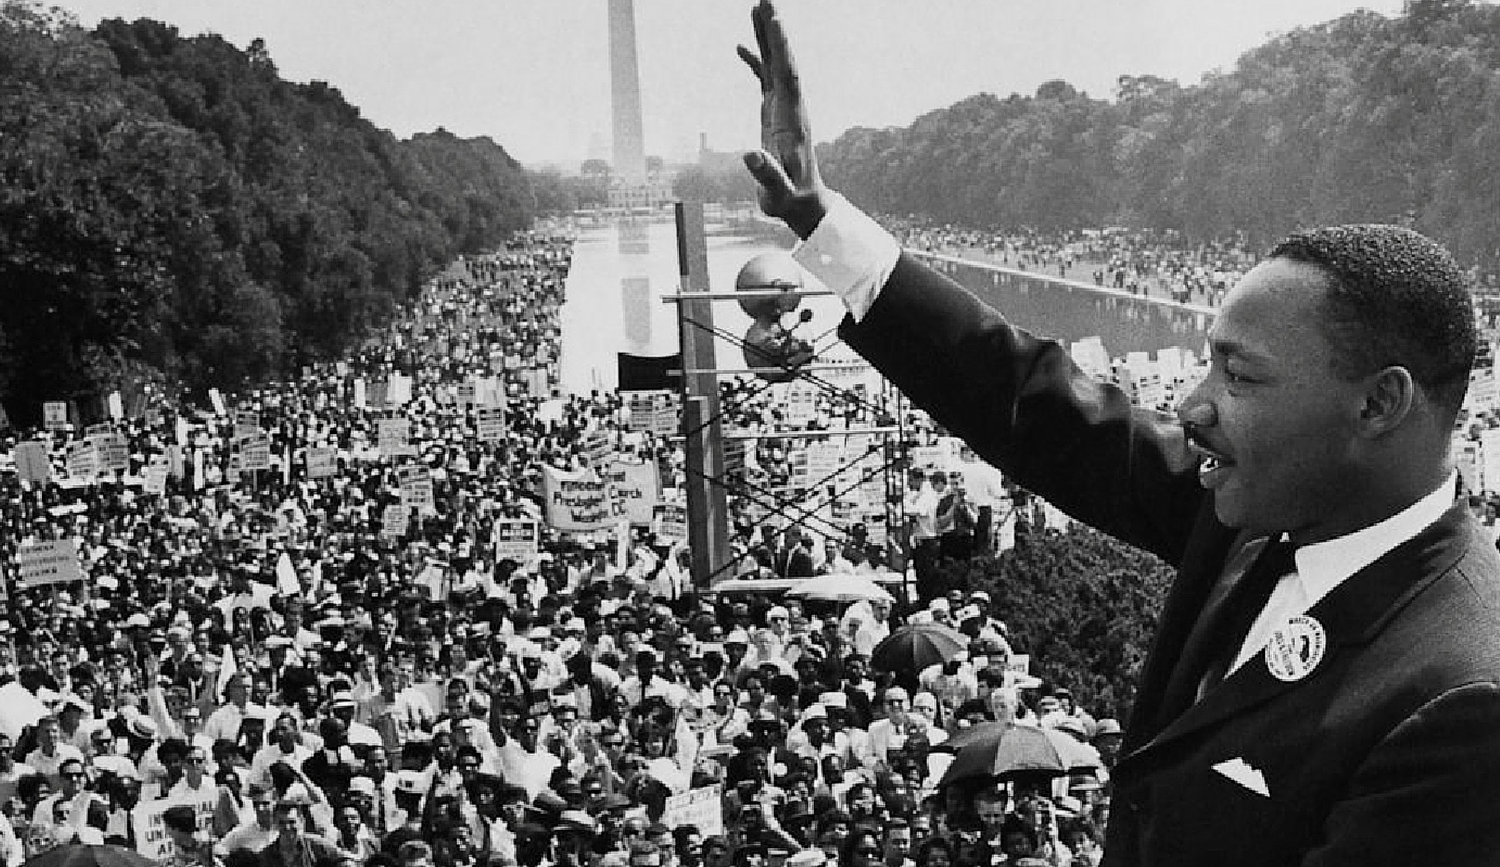 mlkmarch-blog-011916